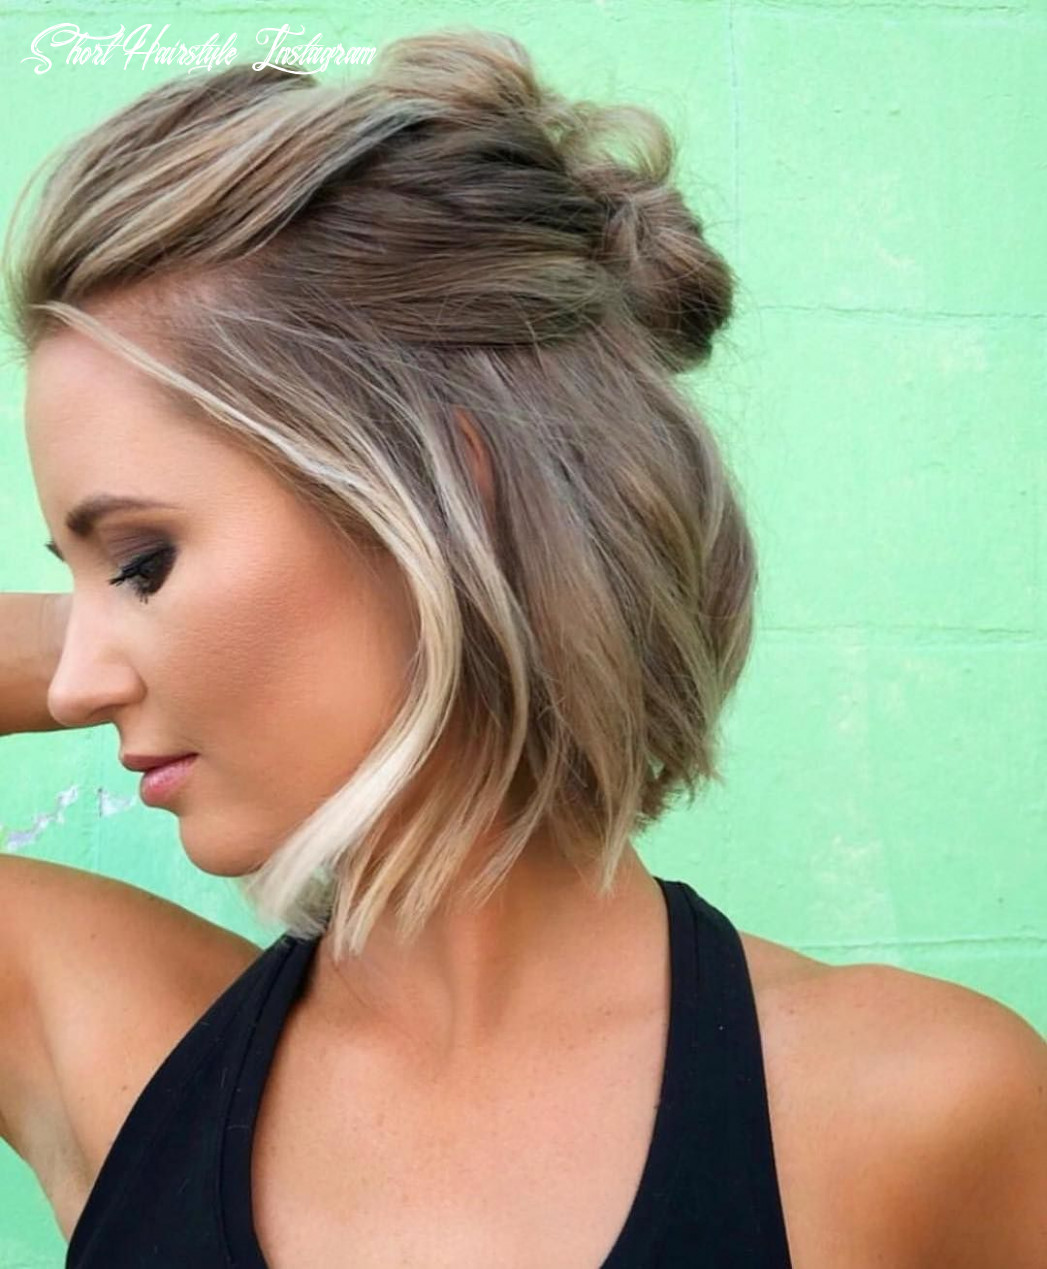 9 stunning short hairstyles on instagram (may 9